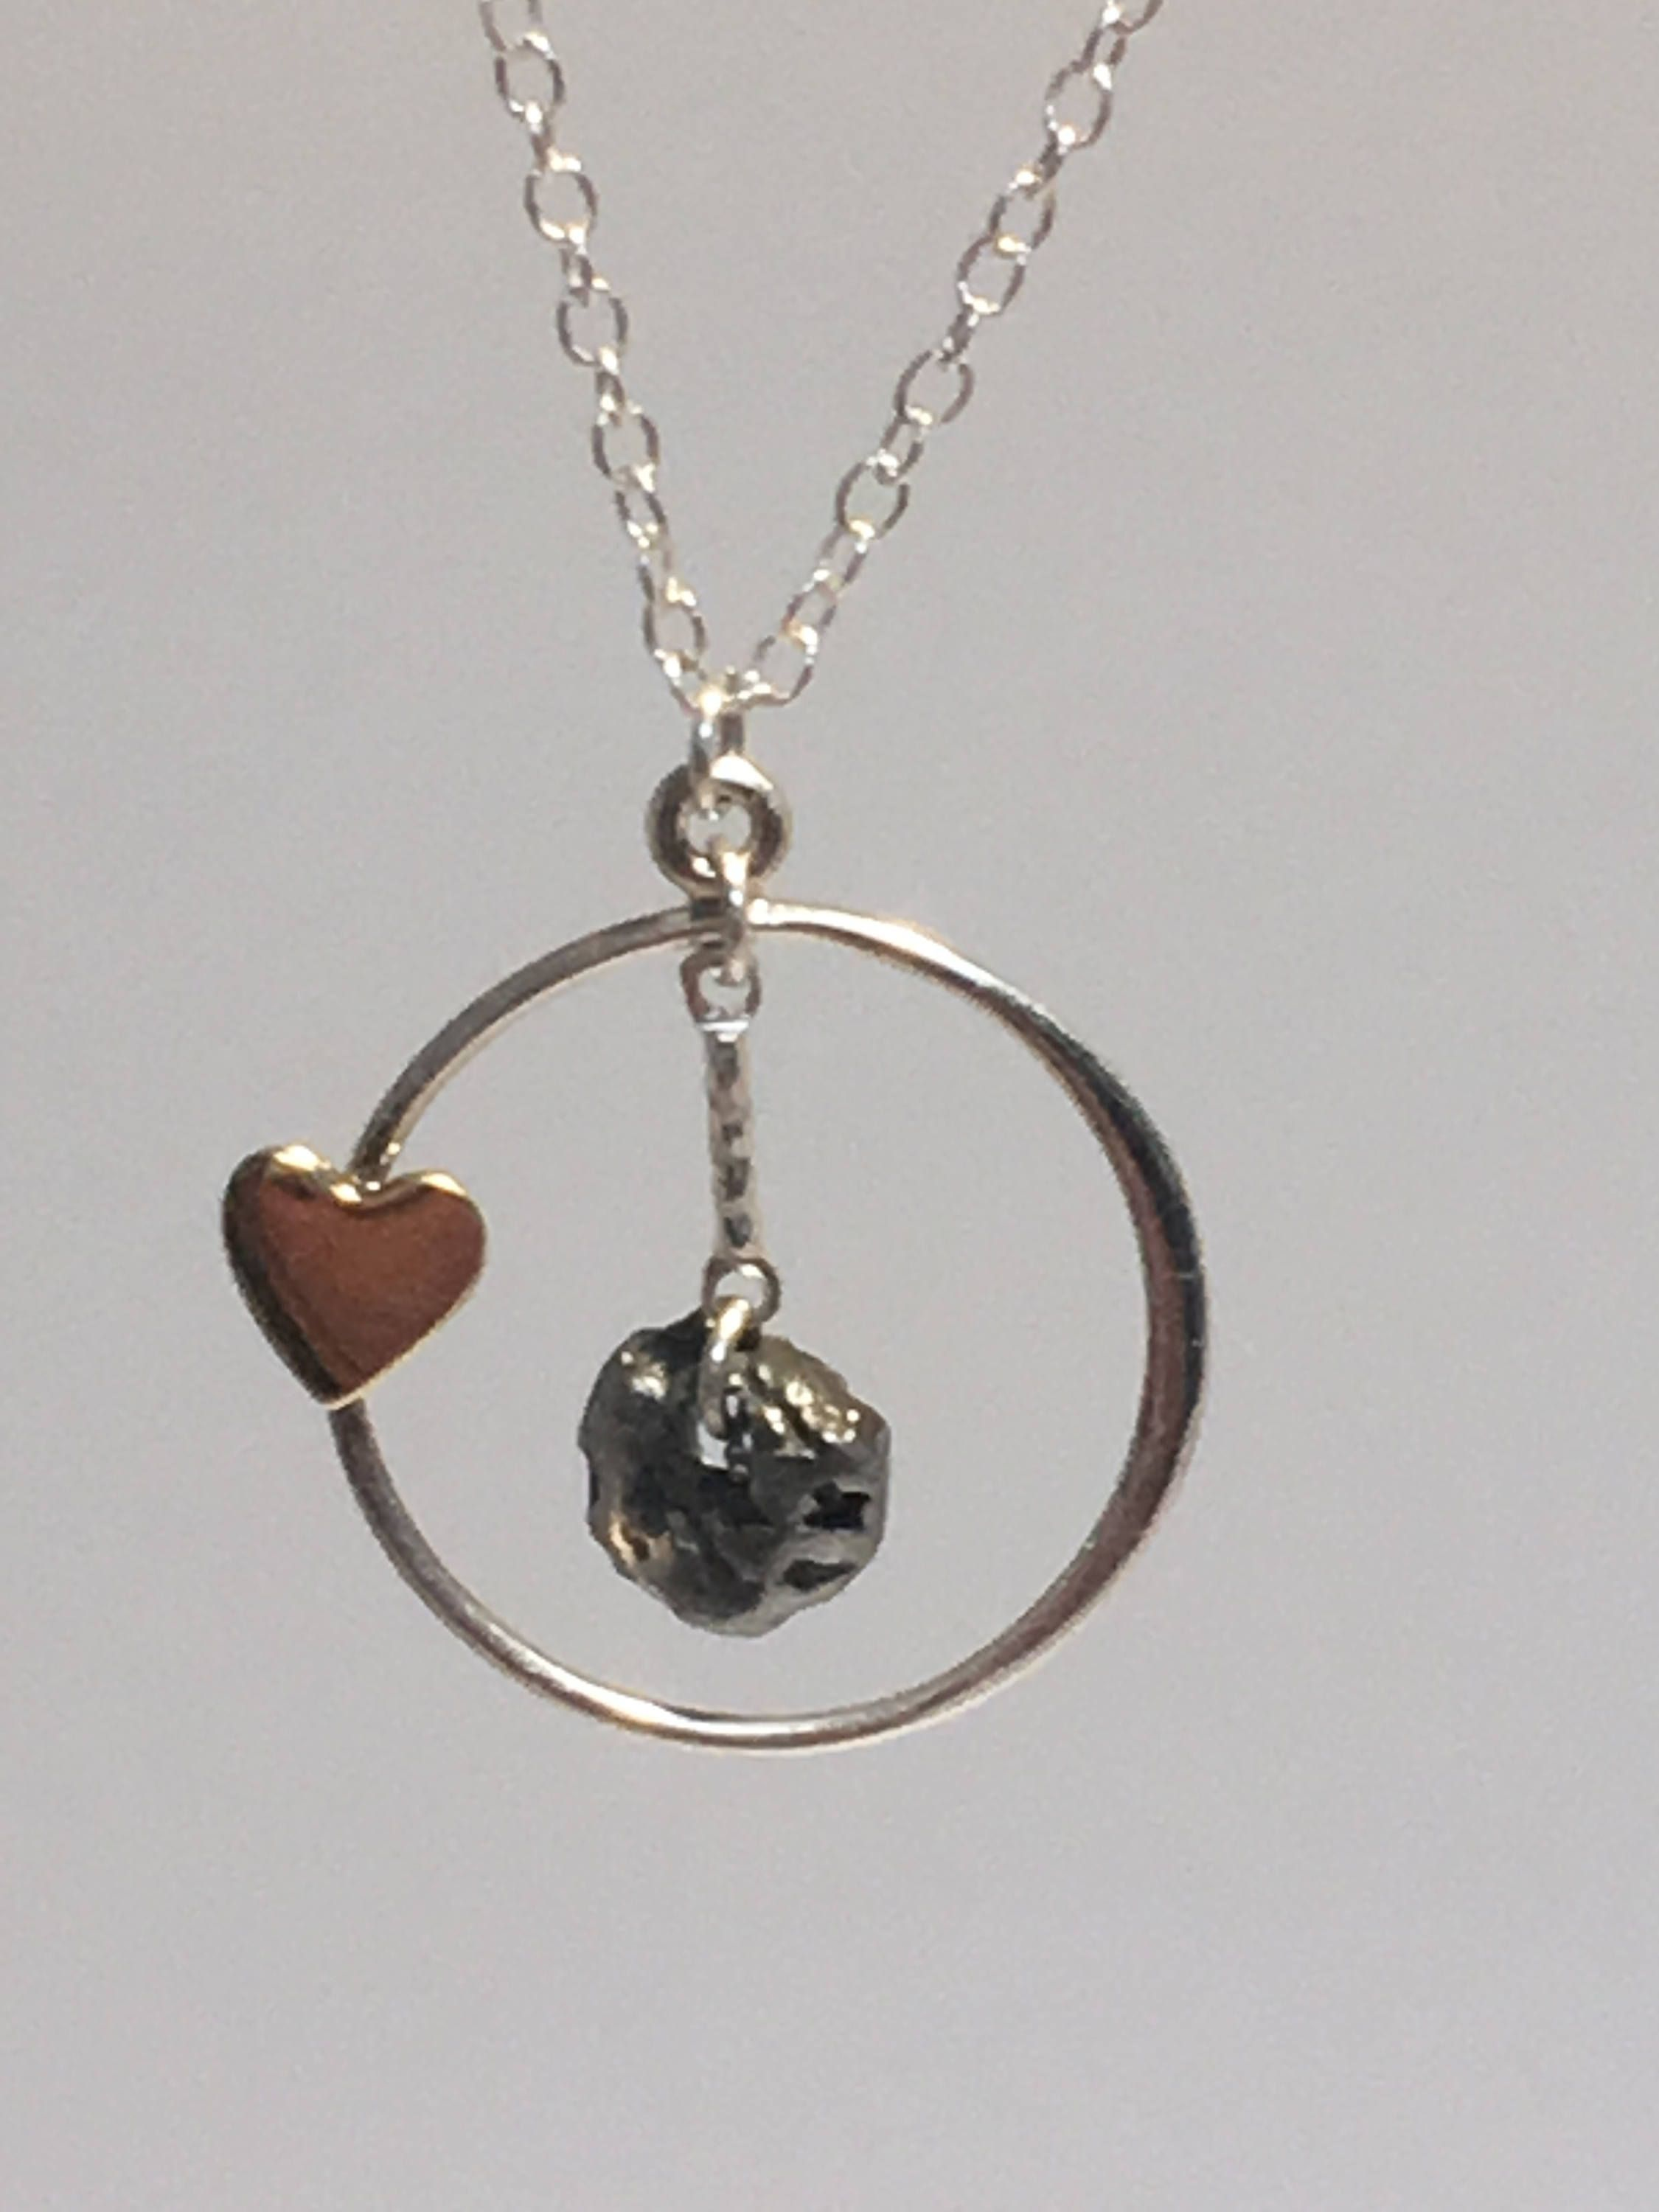 Meteorite jewelry mothers day gift meteorite necklace heart meteorite jewelry mothers day gift meteorite necklace heart charm daughter necklace heart necklace meteorite pendant science aloadofball Images